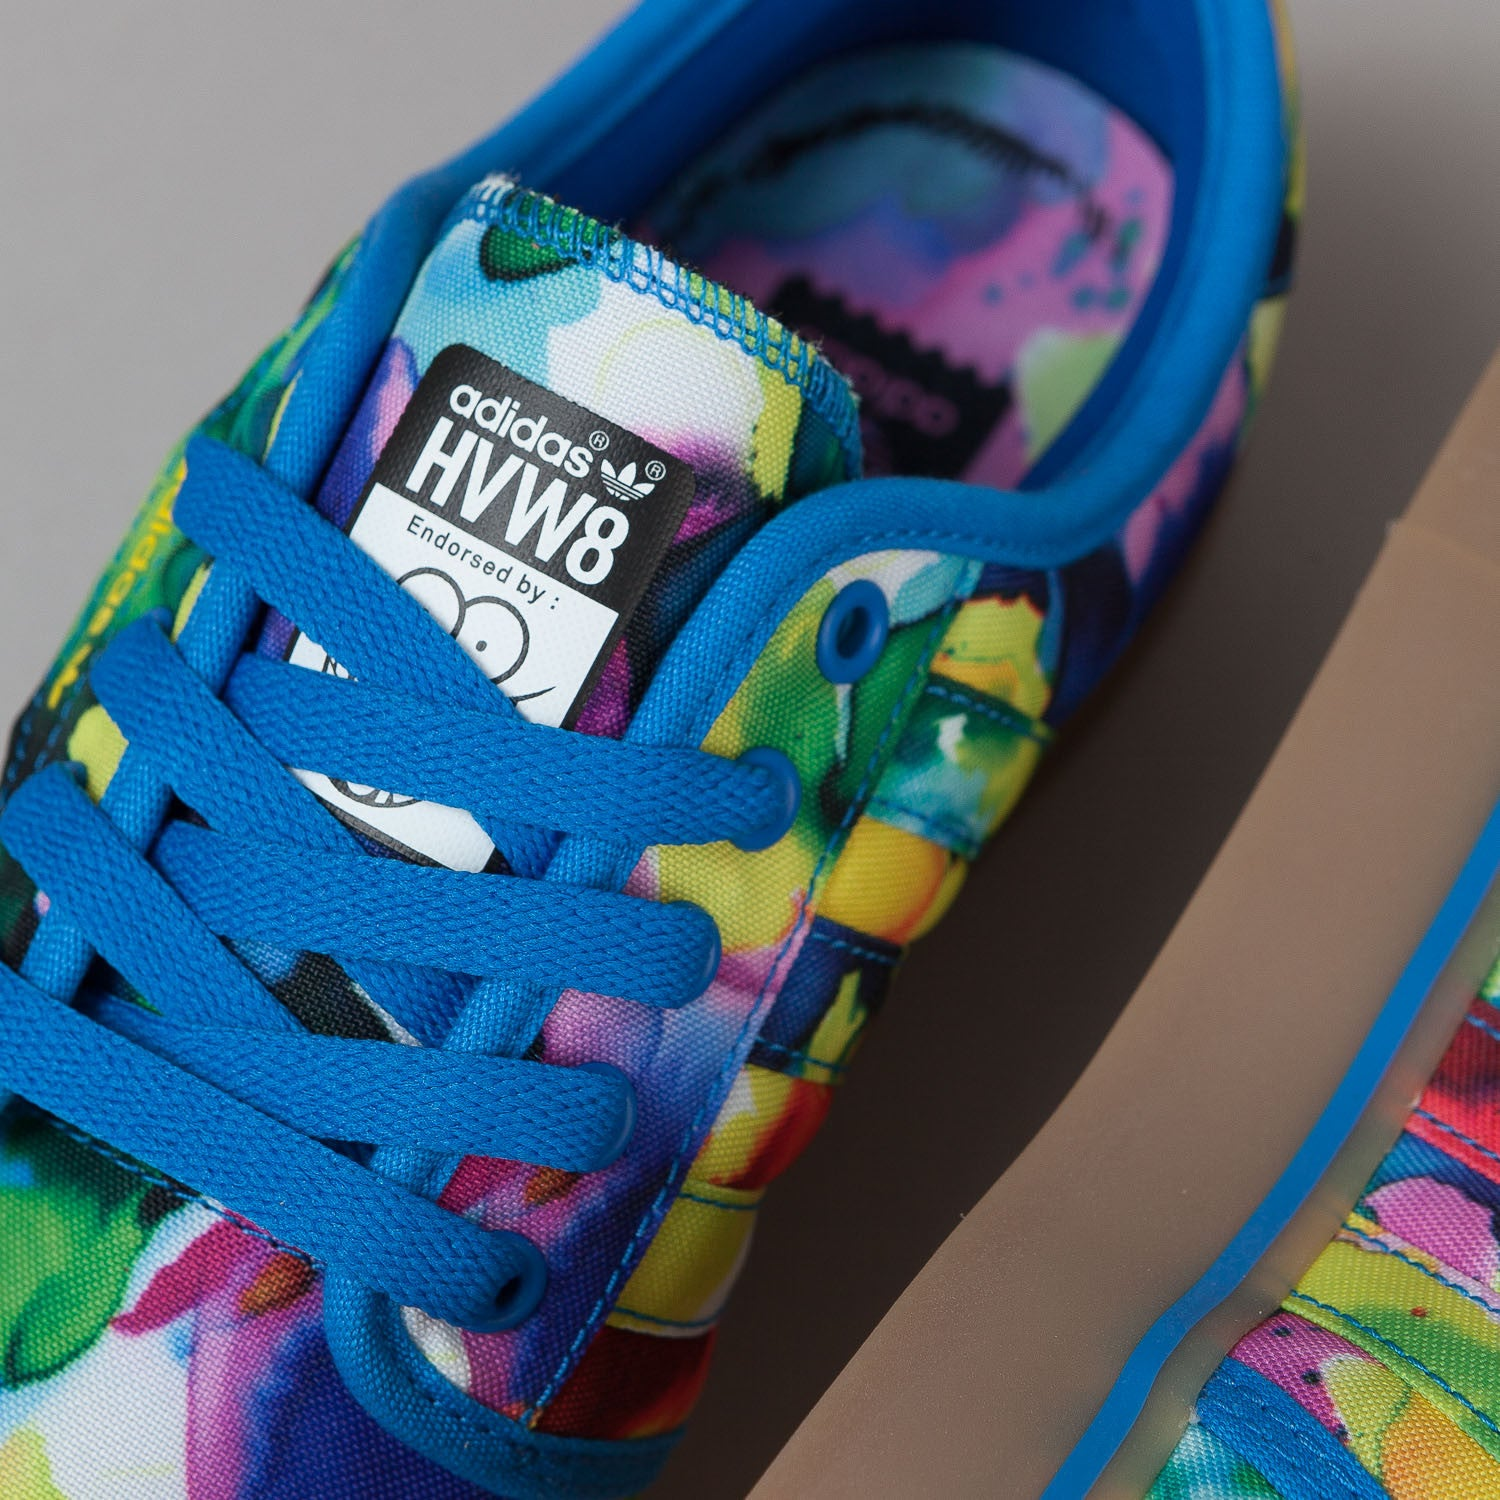 Adidas X HVW8 Seeley Shoes - Bluebird / Yellow / Core Black